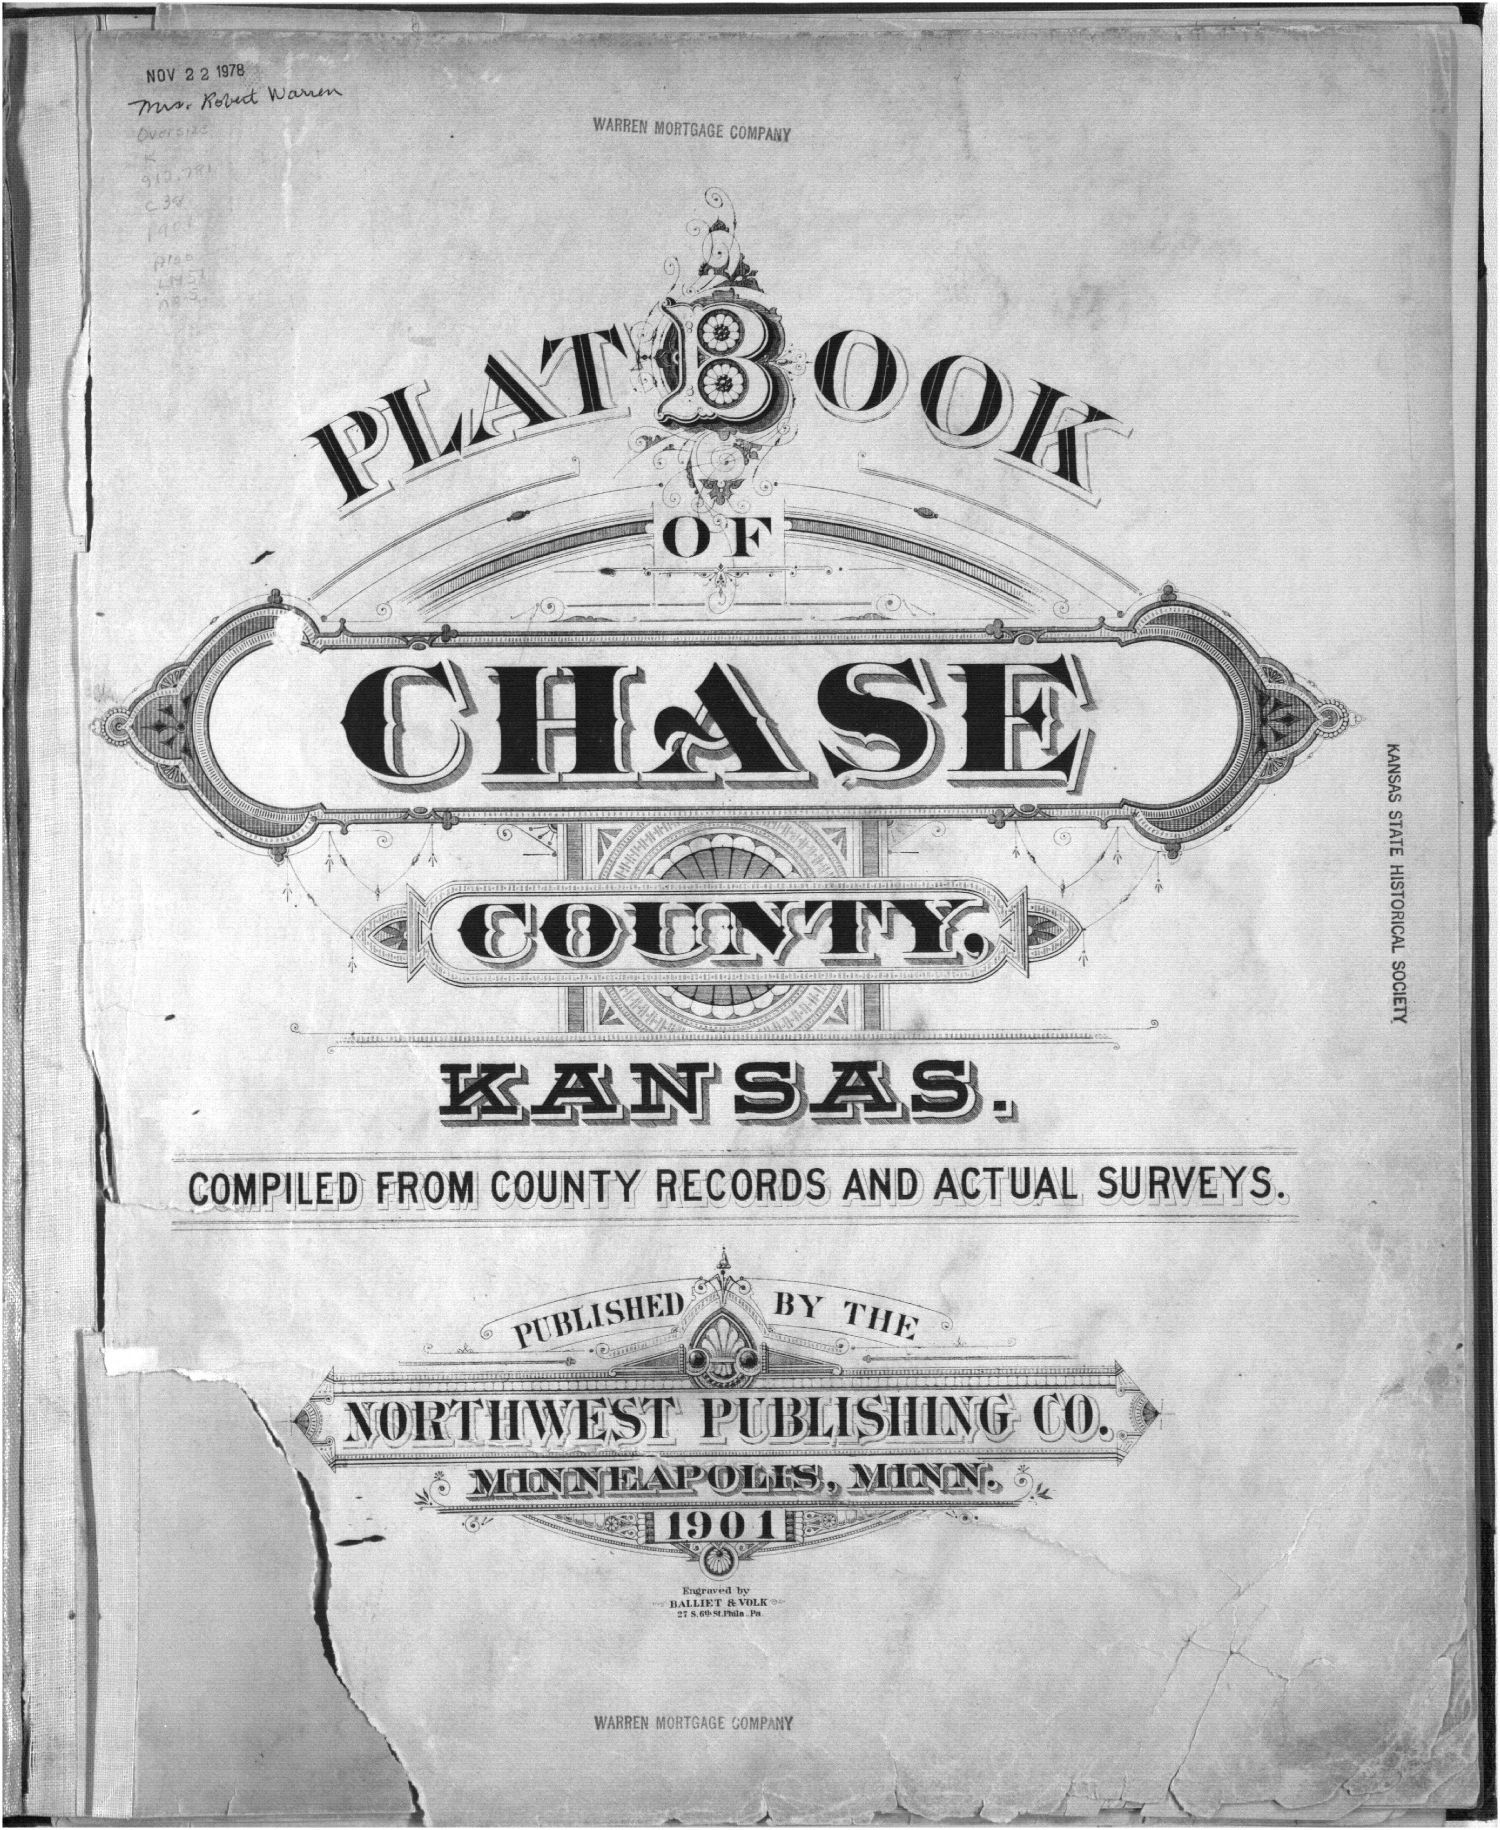 Plat book, Chase County, Kansas - Title Page